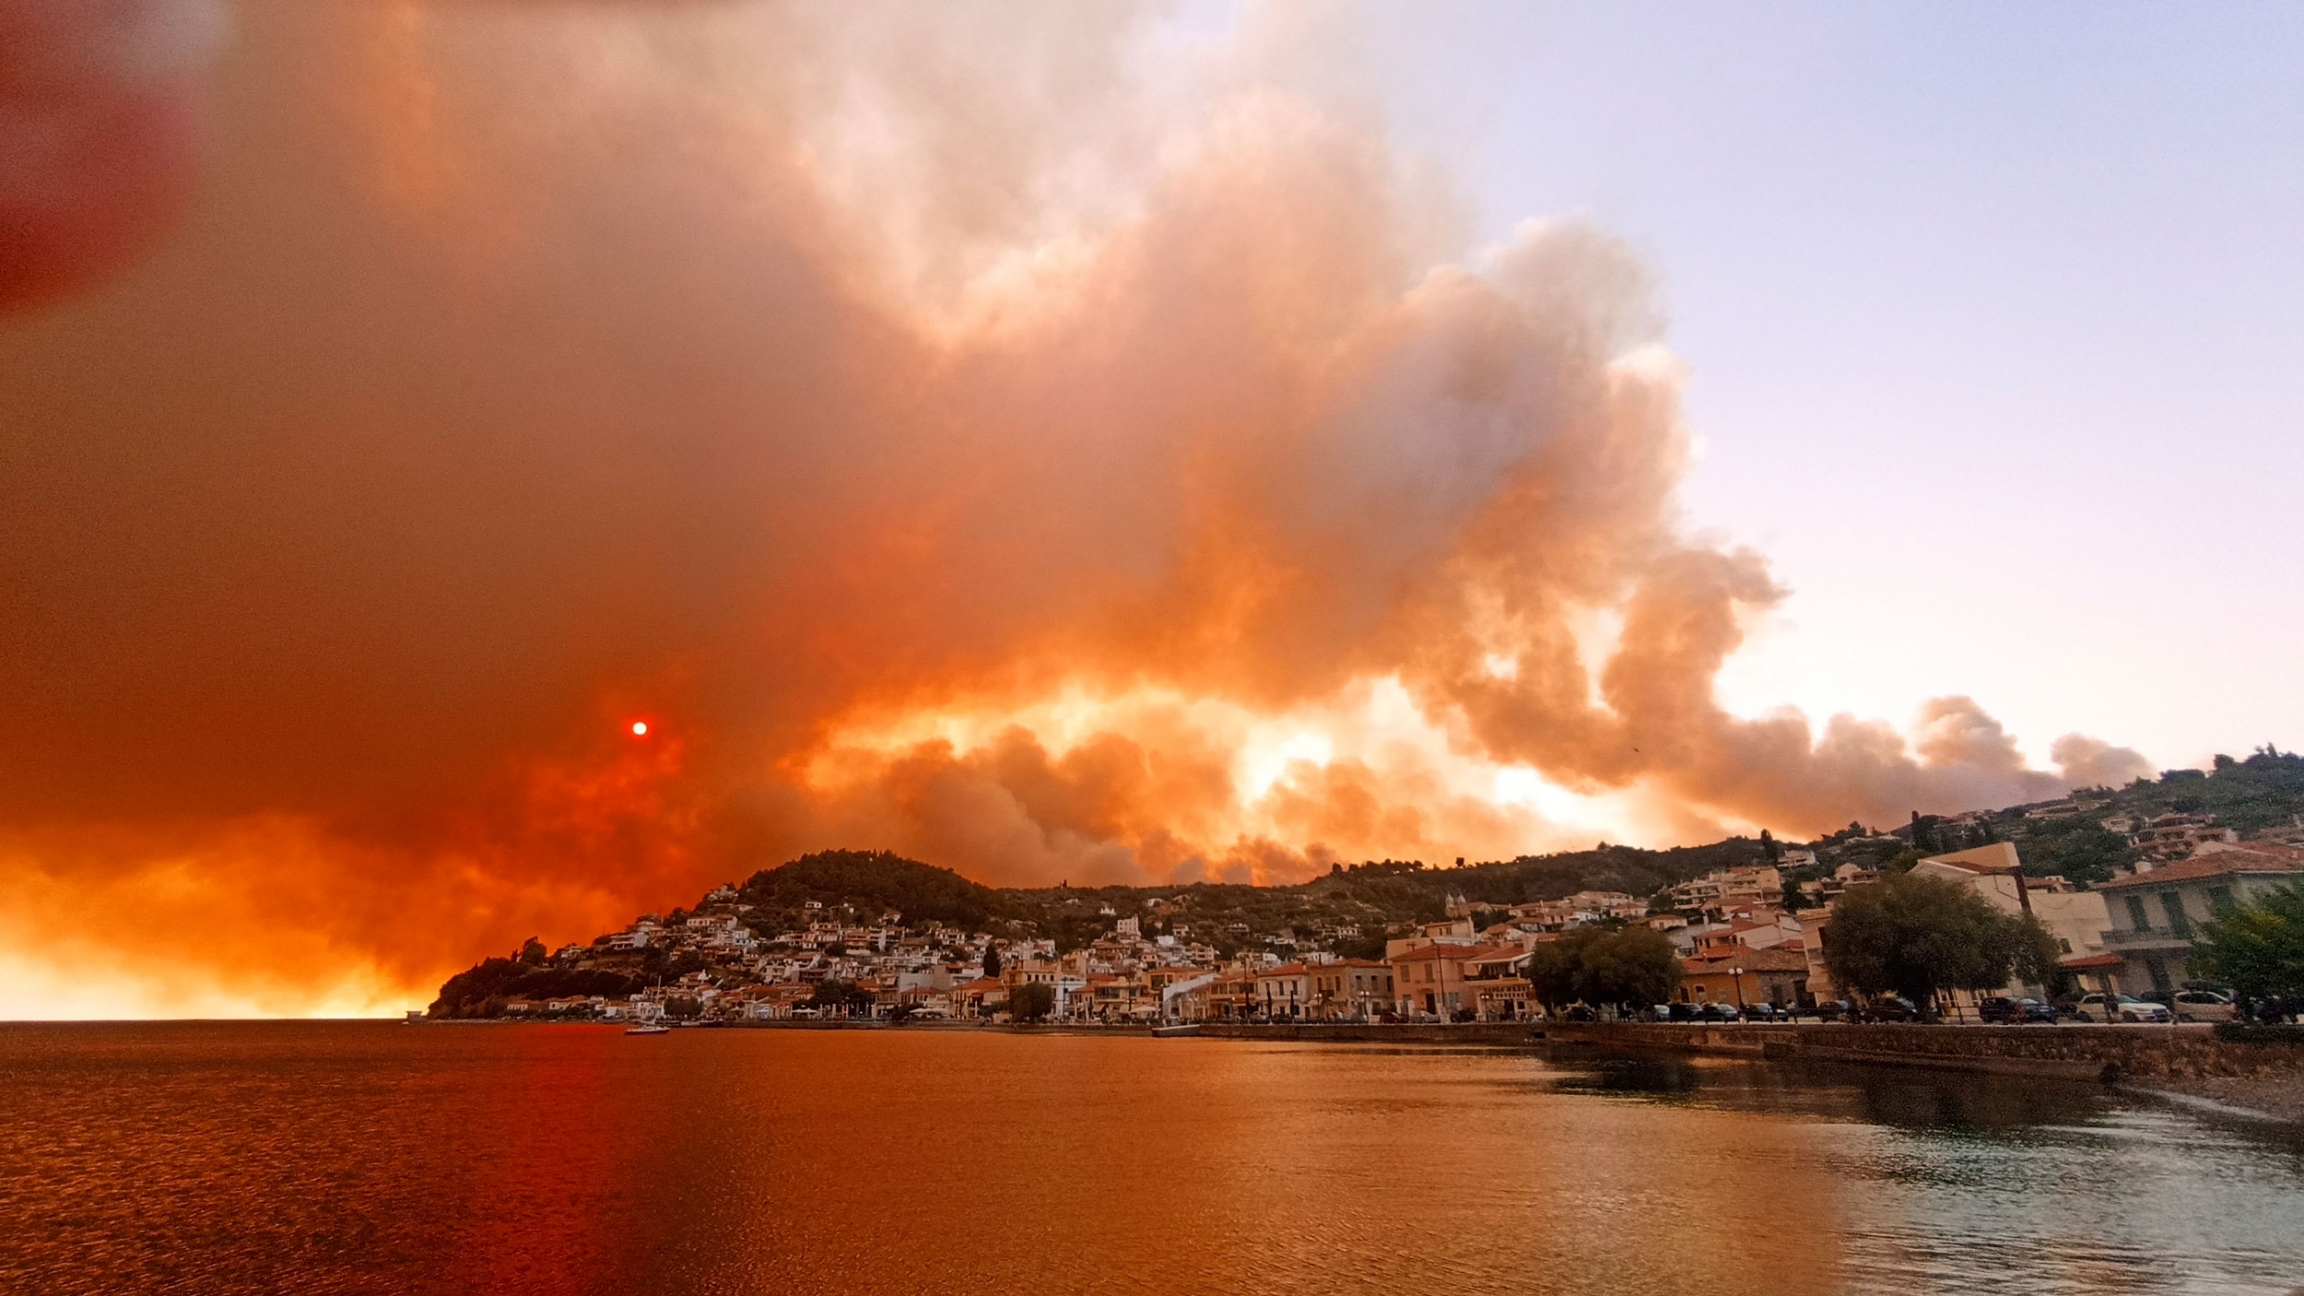 The shoreline of a village on the Greek island of Evia is shown with massive plumes of dark smoke rising in the distance.